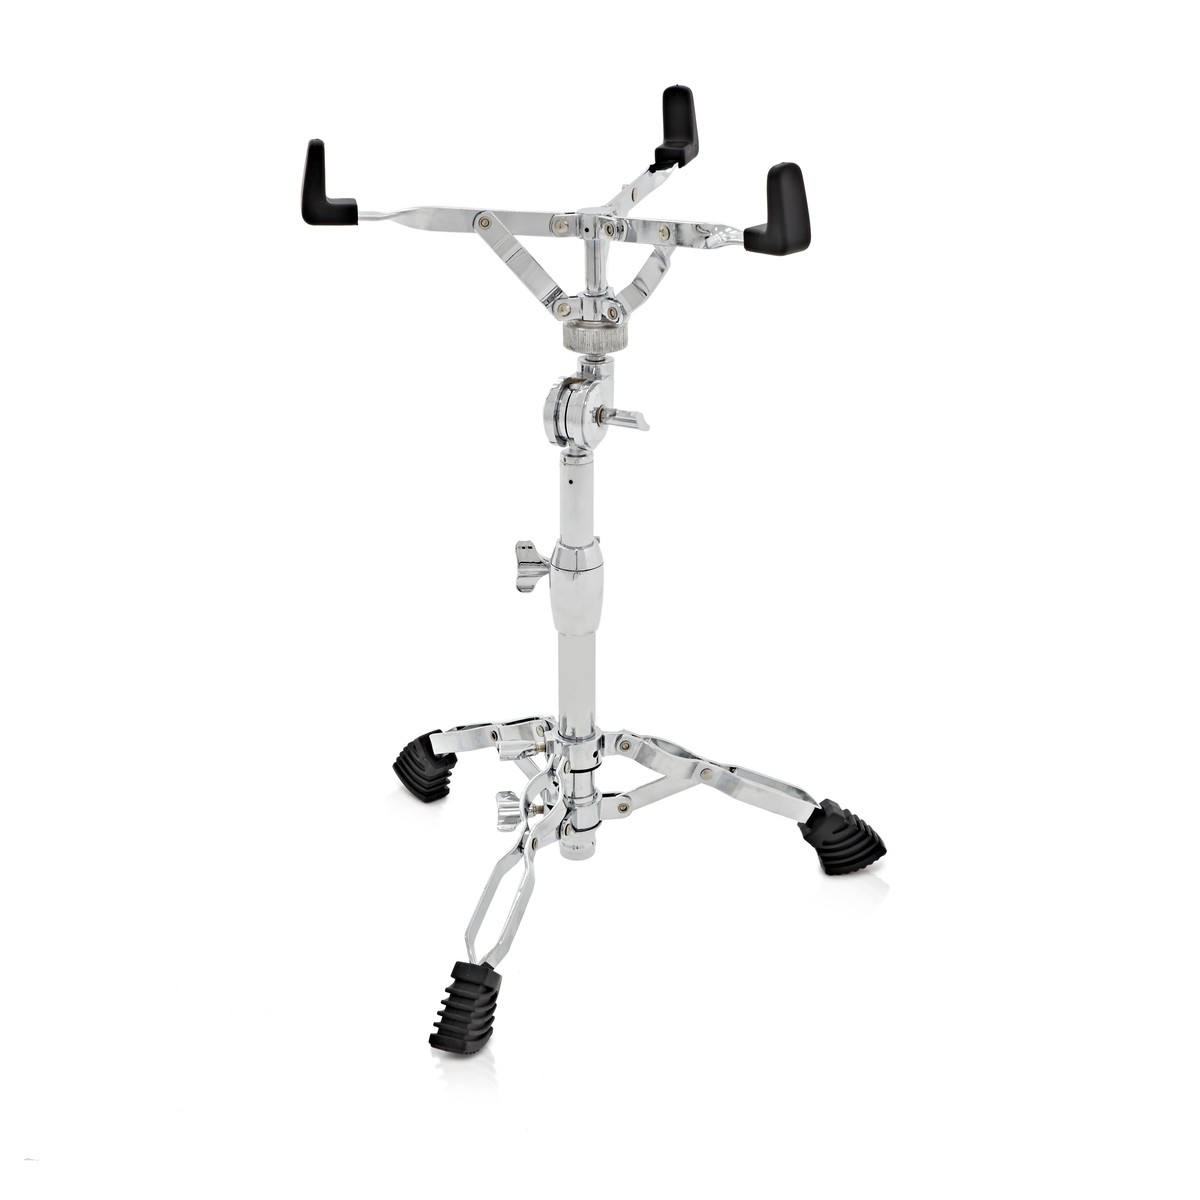 Heavy Duty Snare Drum Stand By Gear4music At Gear4music